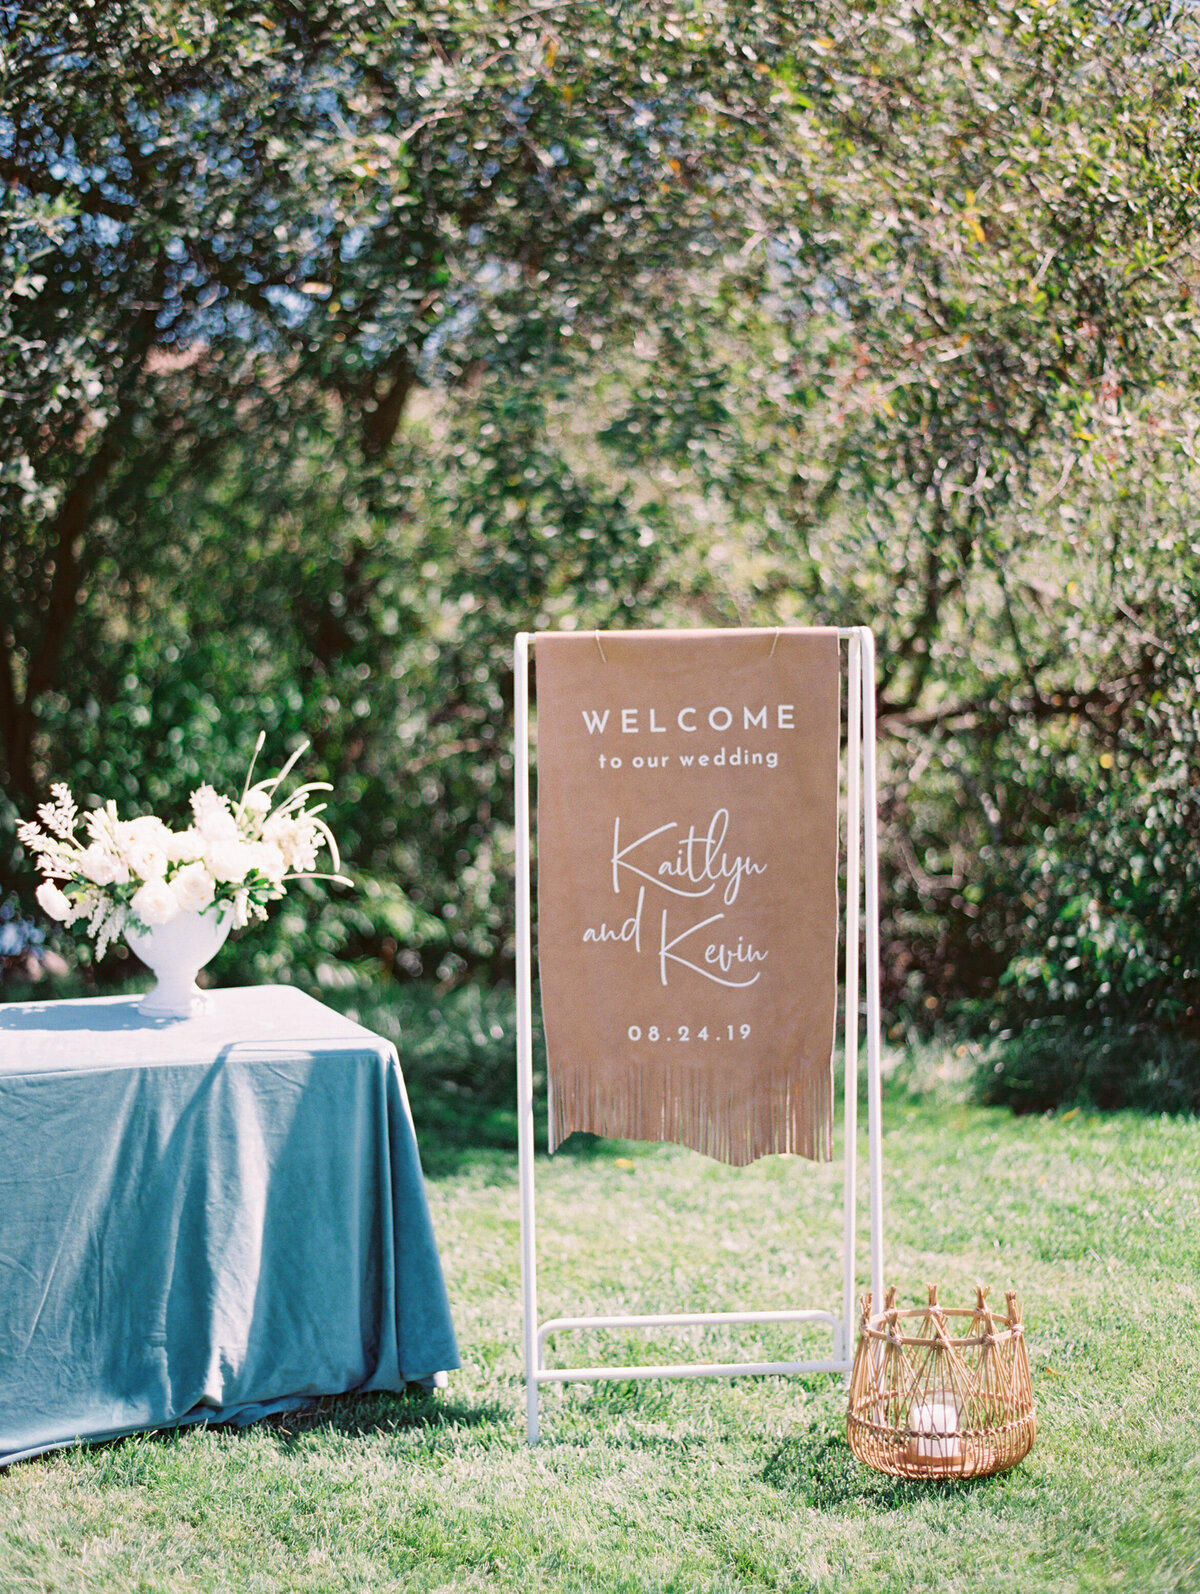 KaitlynKevinWedding_Film_021 (1)